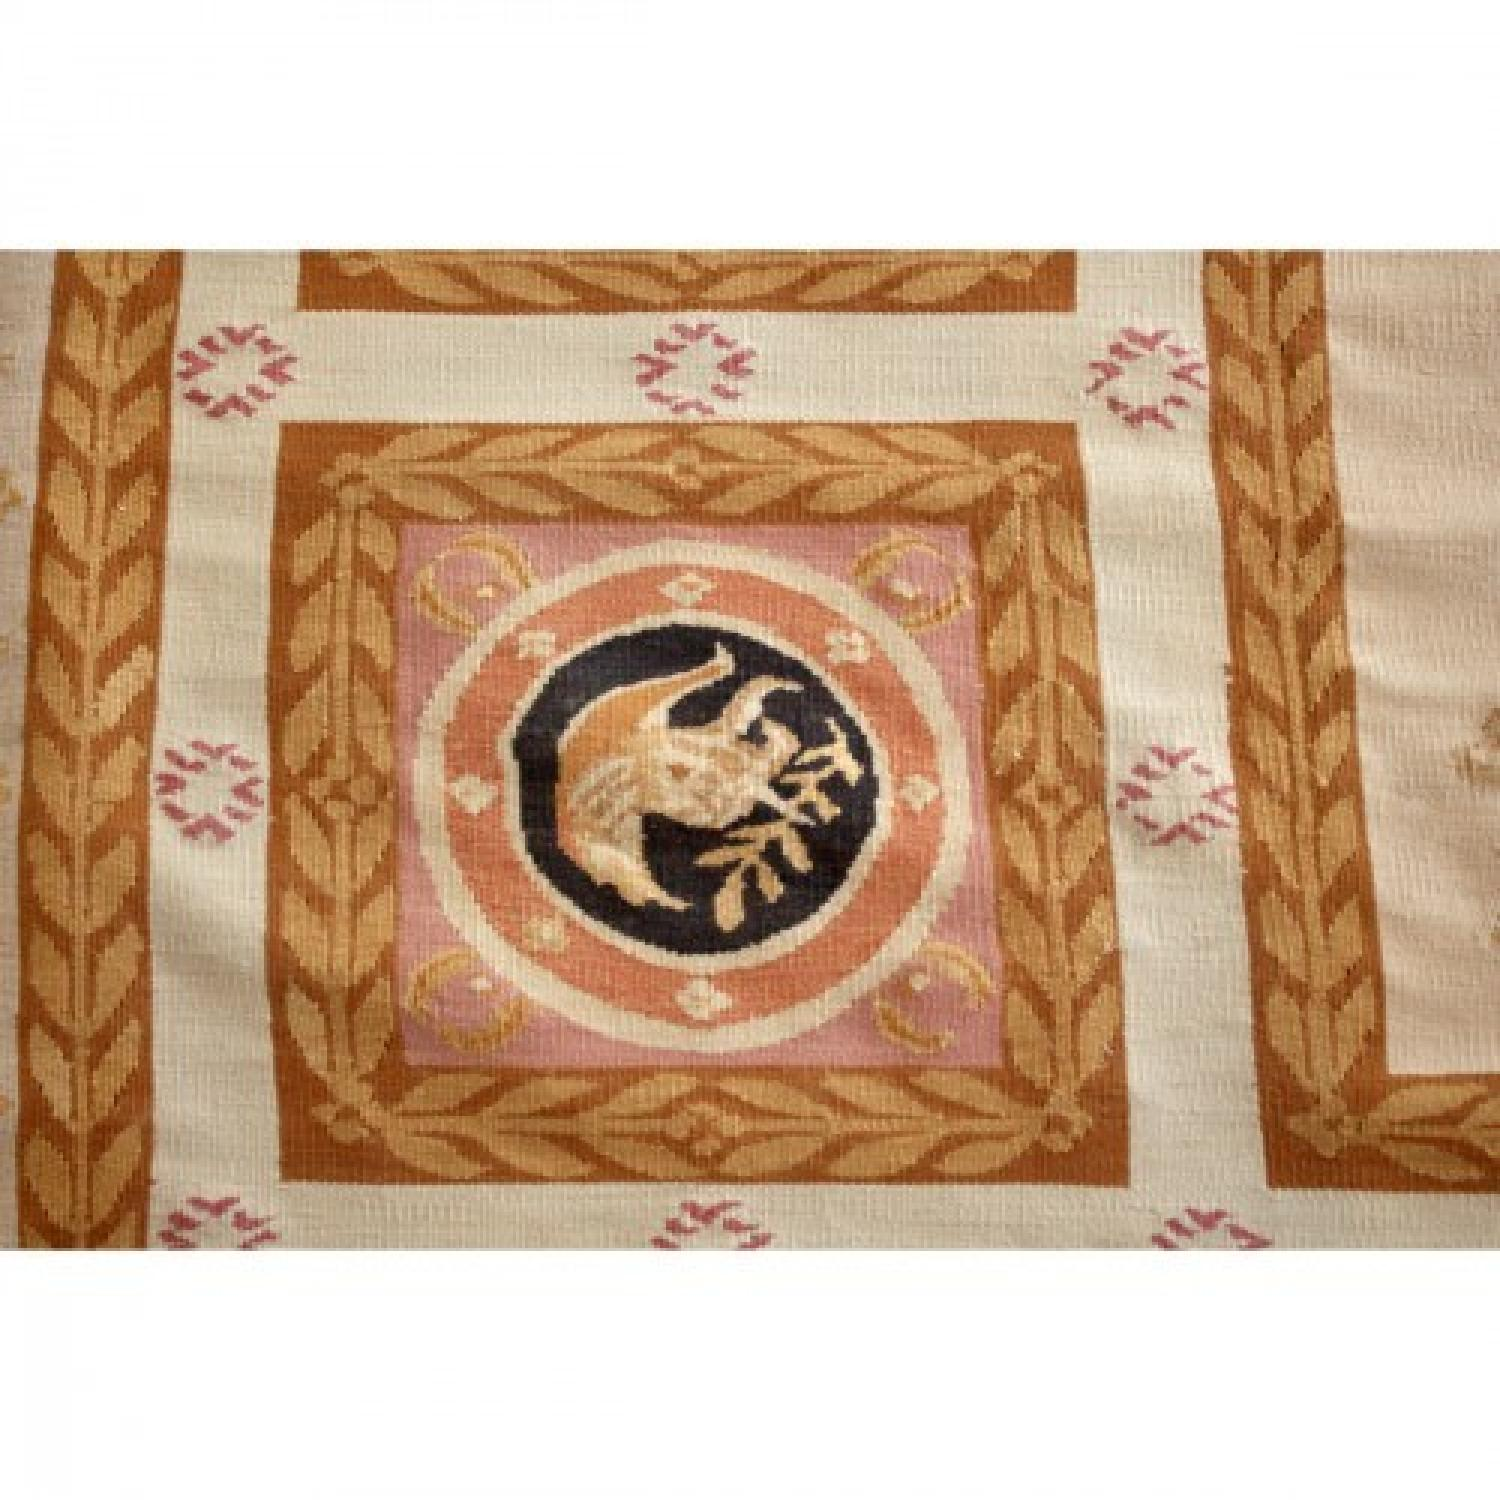 ABC Carpet & Home Hand Tied Woven Rug - image-5